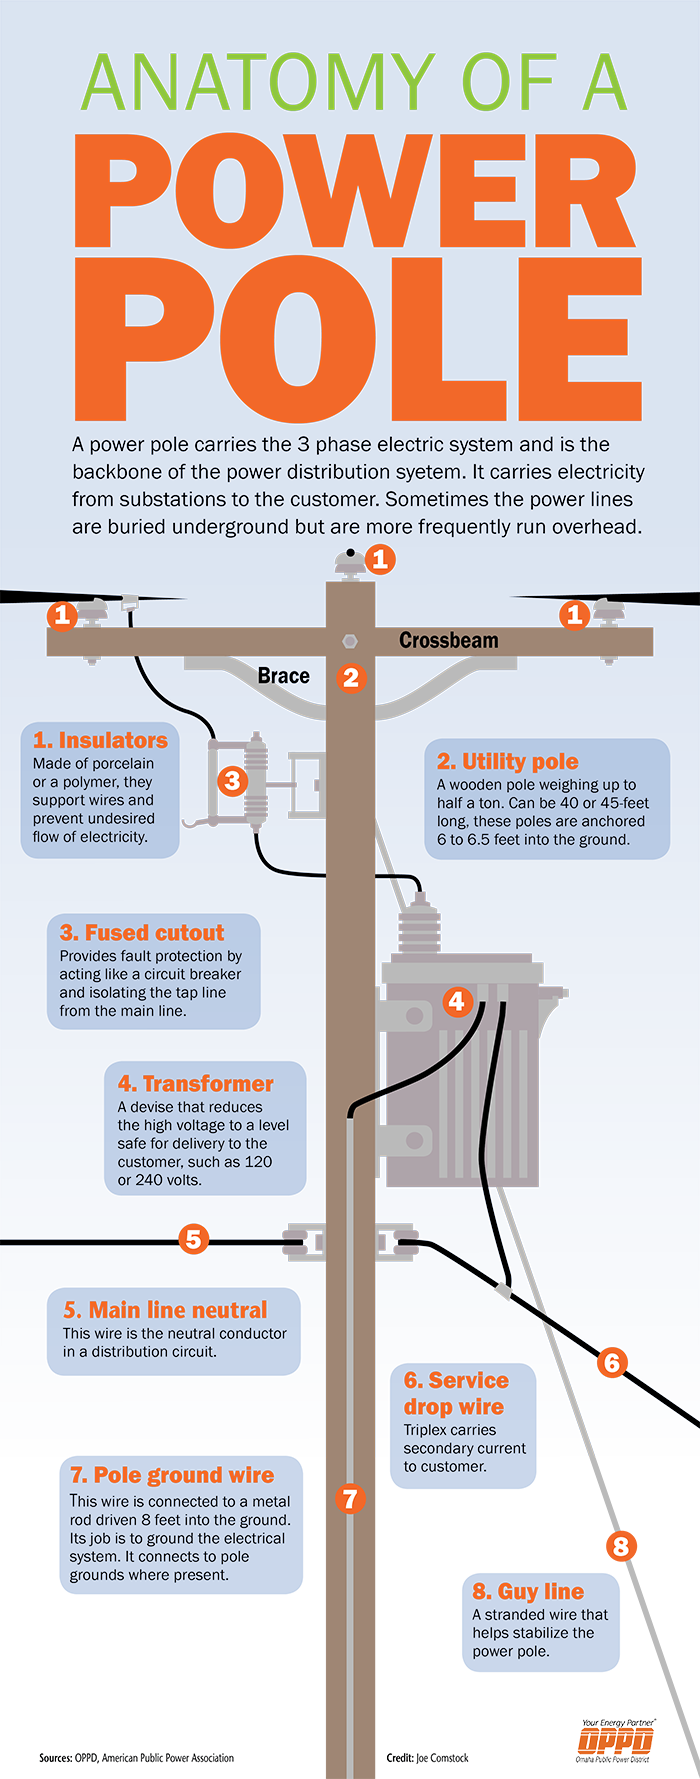 POWER POLE INFOGRAPHIC